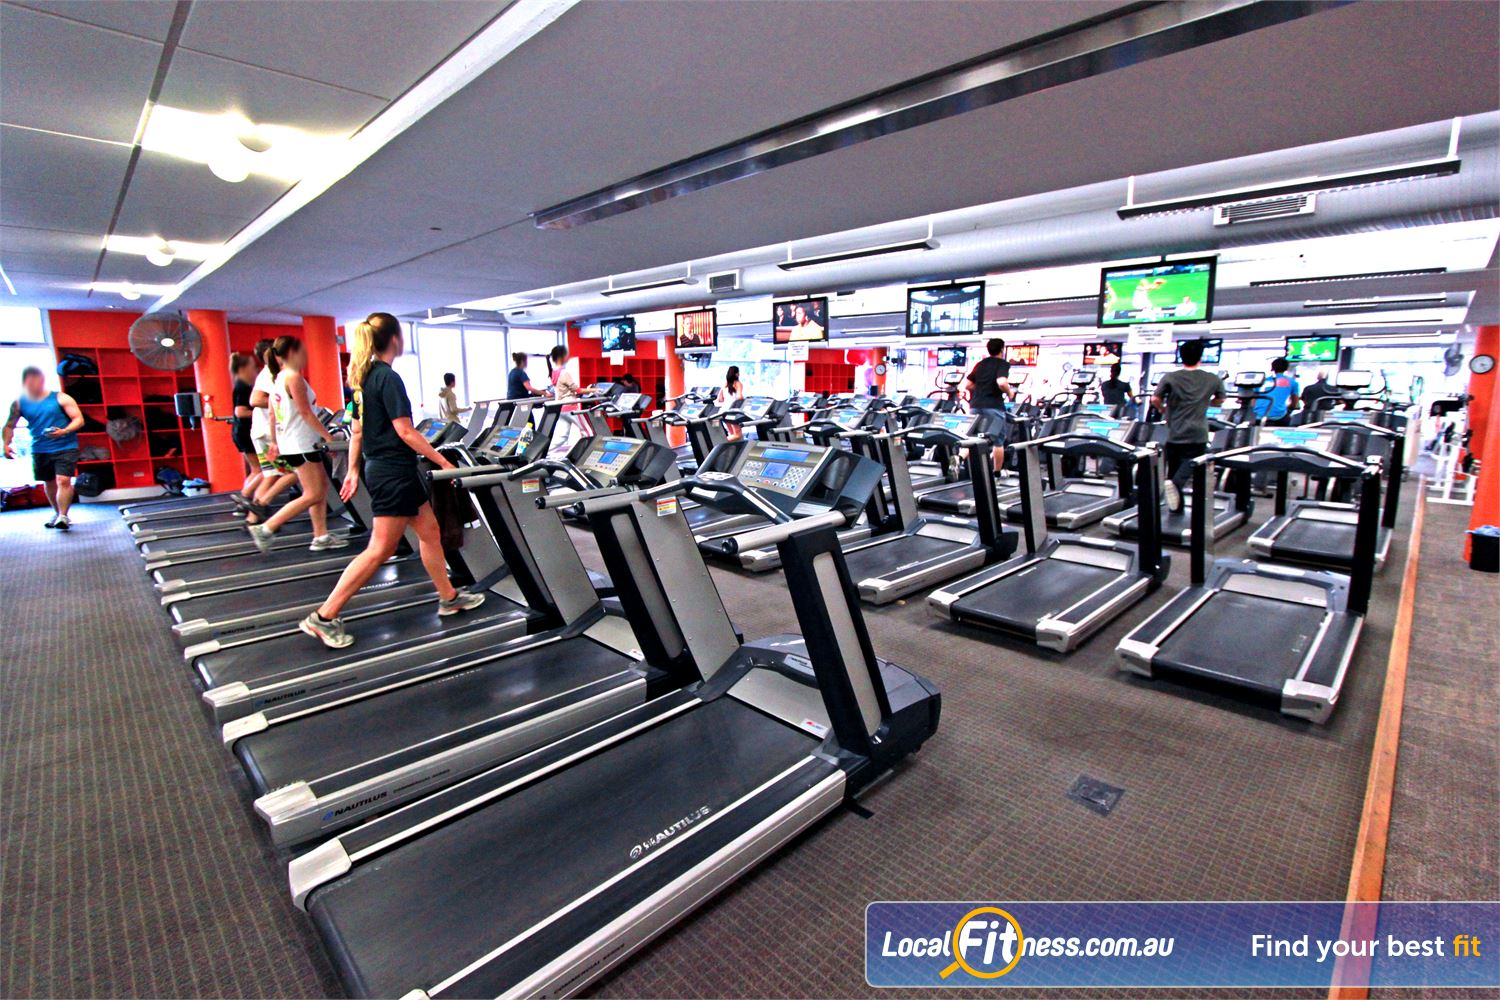 Macquarie University Sport & Aquatic Centre Near North Epping At our Macquarie University gym, enjoy your favourite program on one of our large LCD televisions.